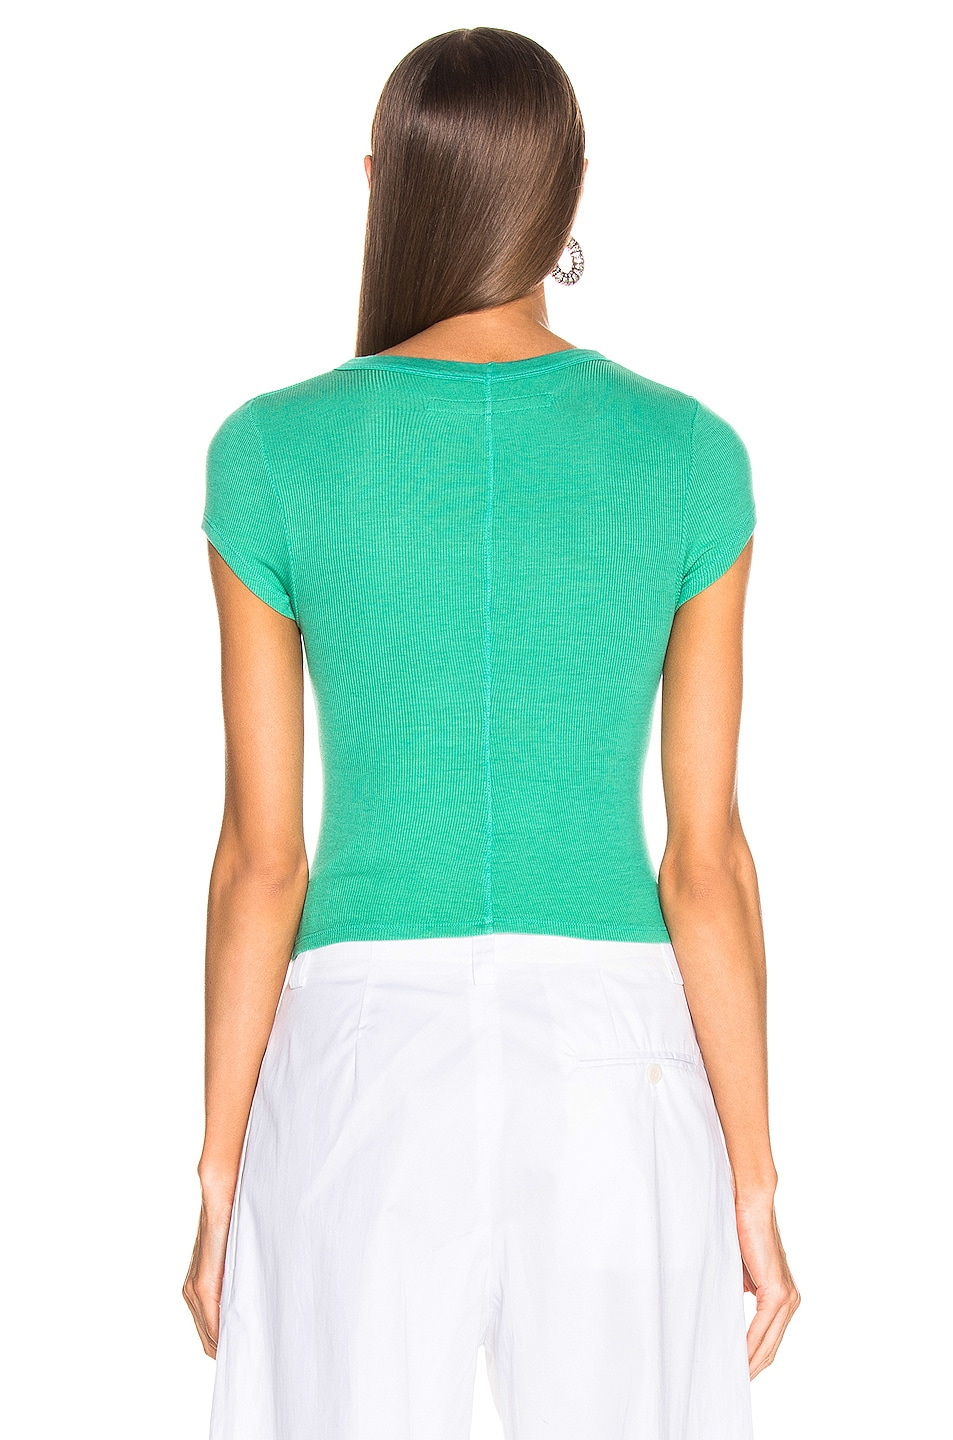 Image 3 of Enza Costa Cropped Tee in Jade Green